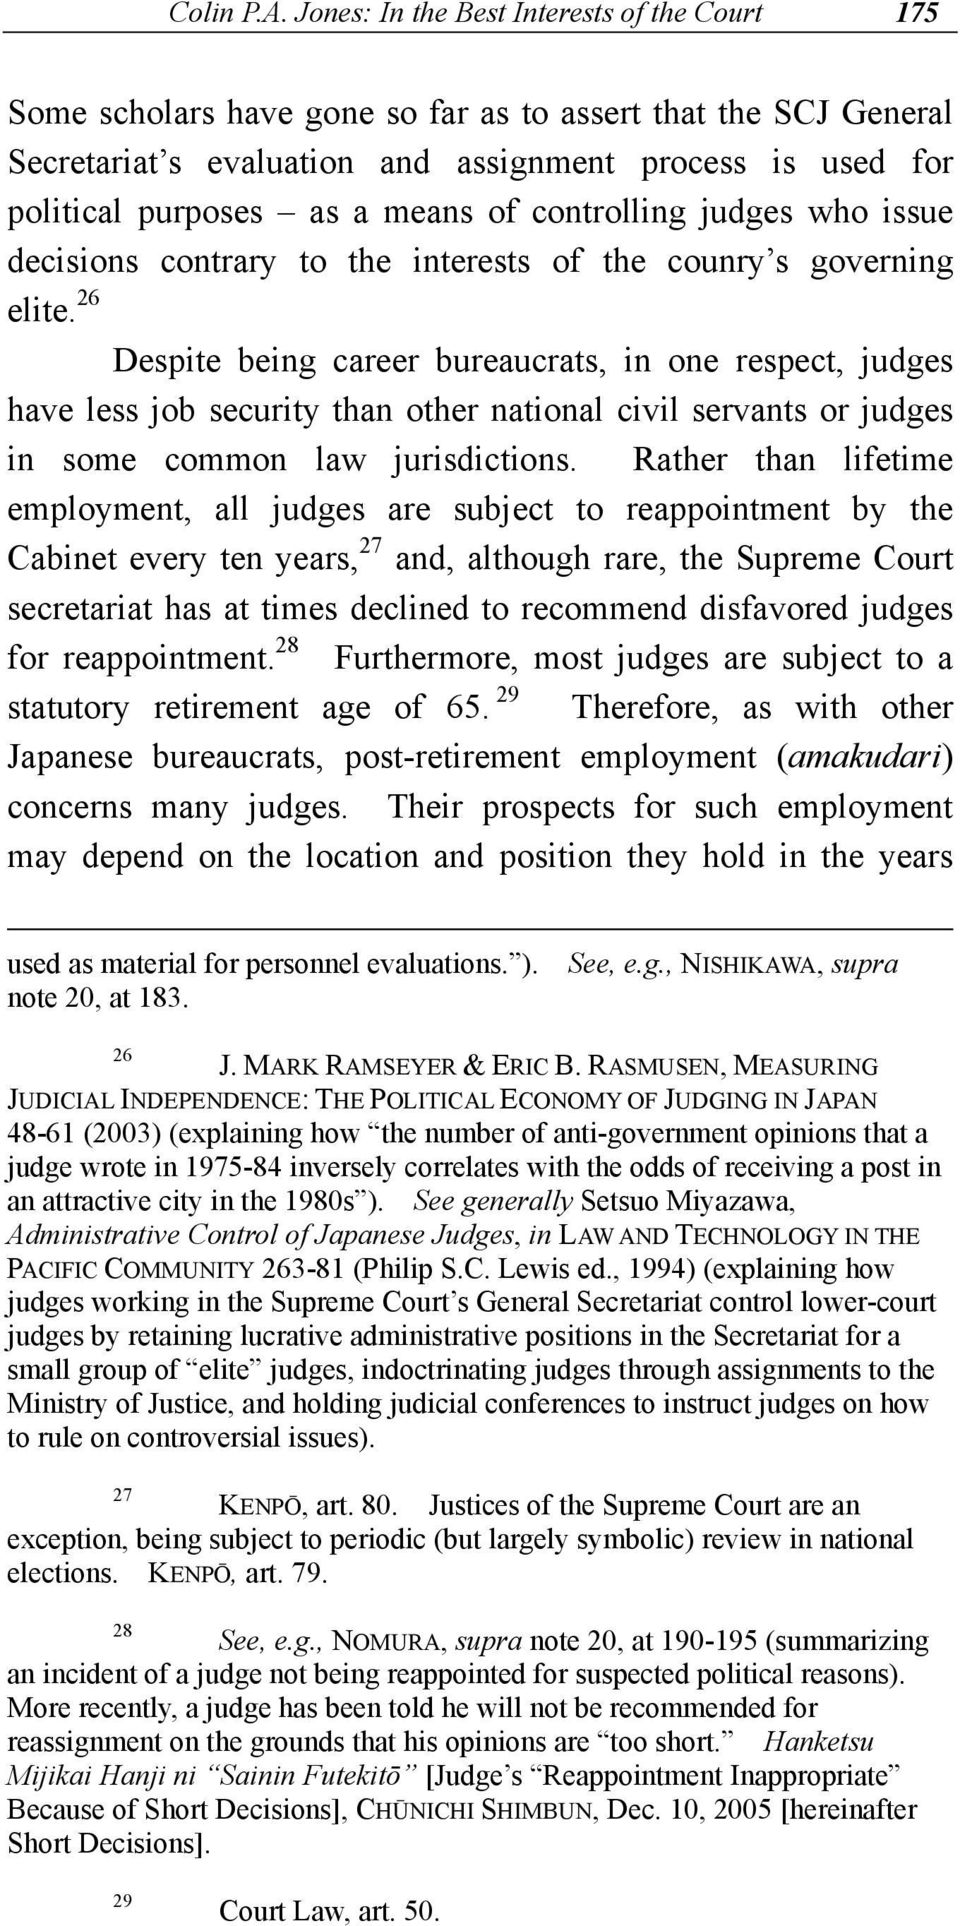 means of controlling judges who issue decisions contrary to the interests of the counry s governing elite.